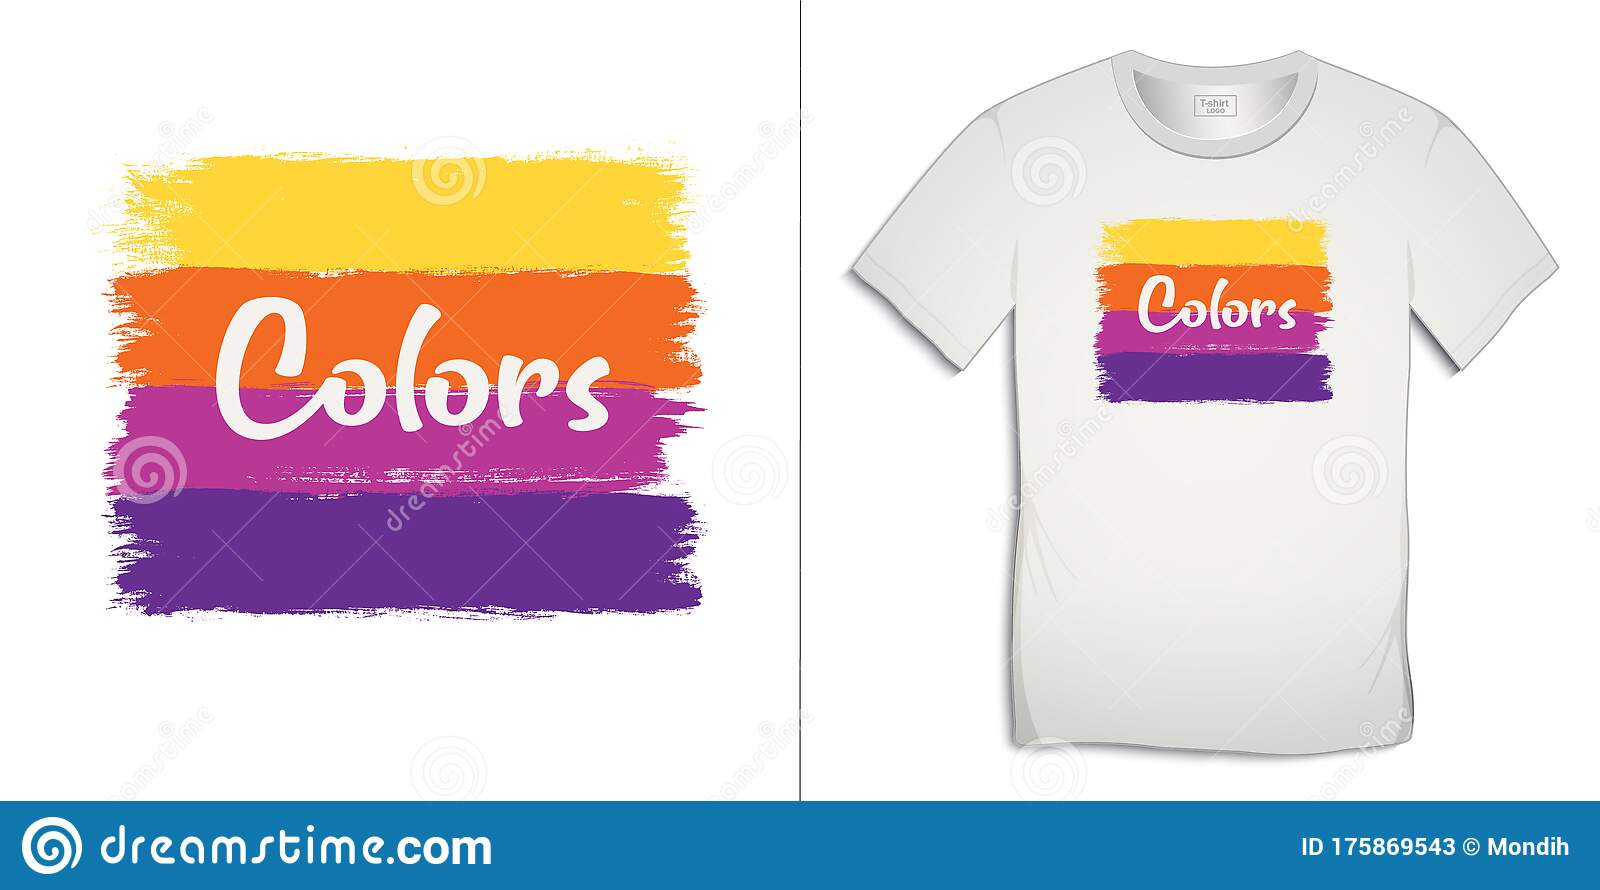 Print On T Shirt Graphics Design Paint Colors Isolated On White Background Stock Vector Illustration Of Design Proposal 175869543